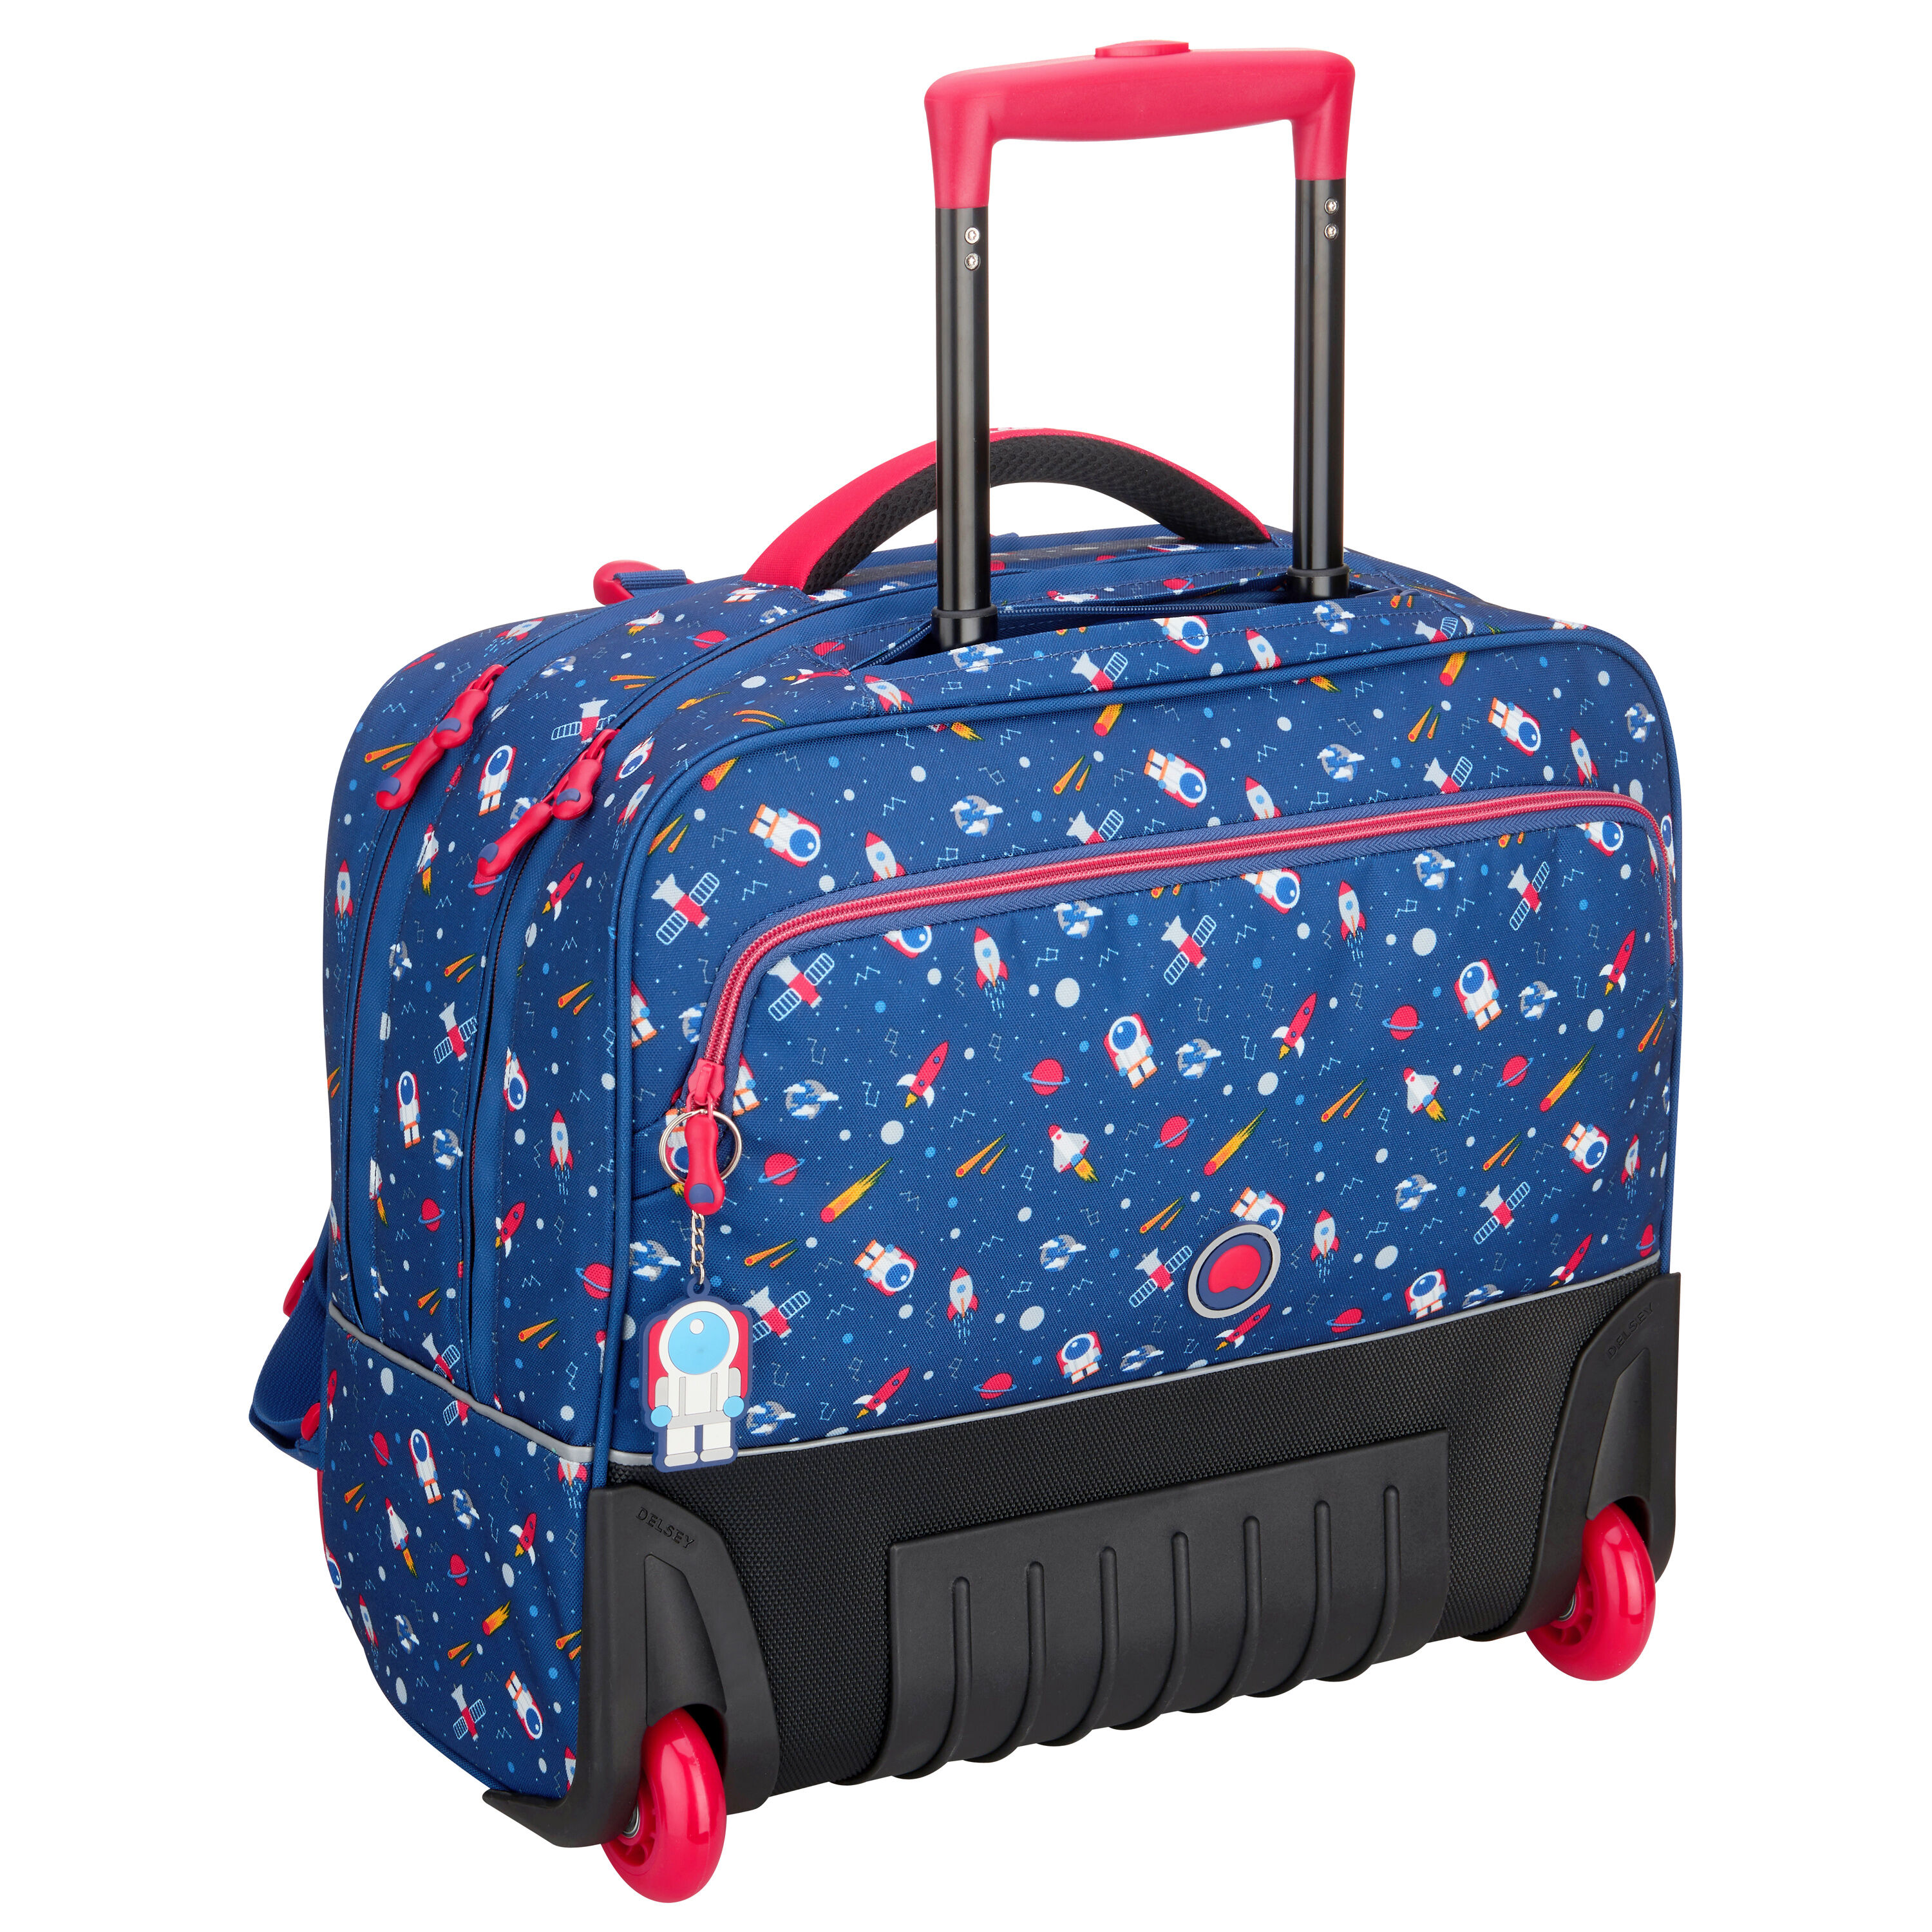 (enfant) Delsey Cartable à roulettes School 2018 Sac a dos Trolley WPS horizontal 9PwCGH